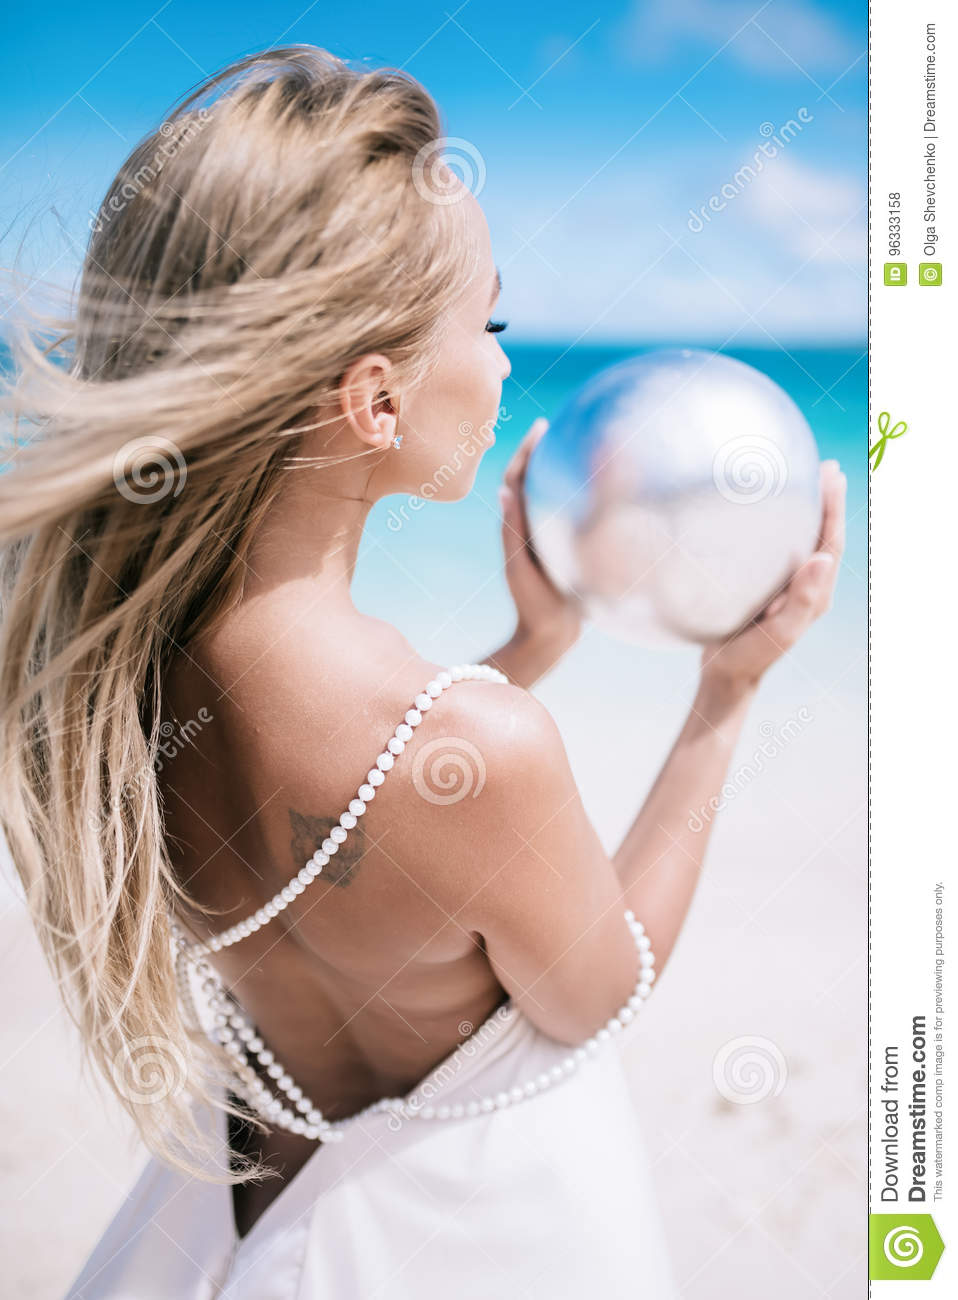 Ortrait of the beautiful blond long hair bride in a open back wedding dress stand on the white sand beach with a pearl.